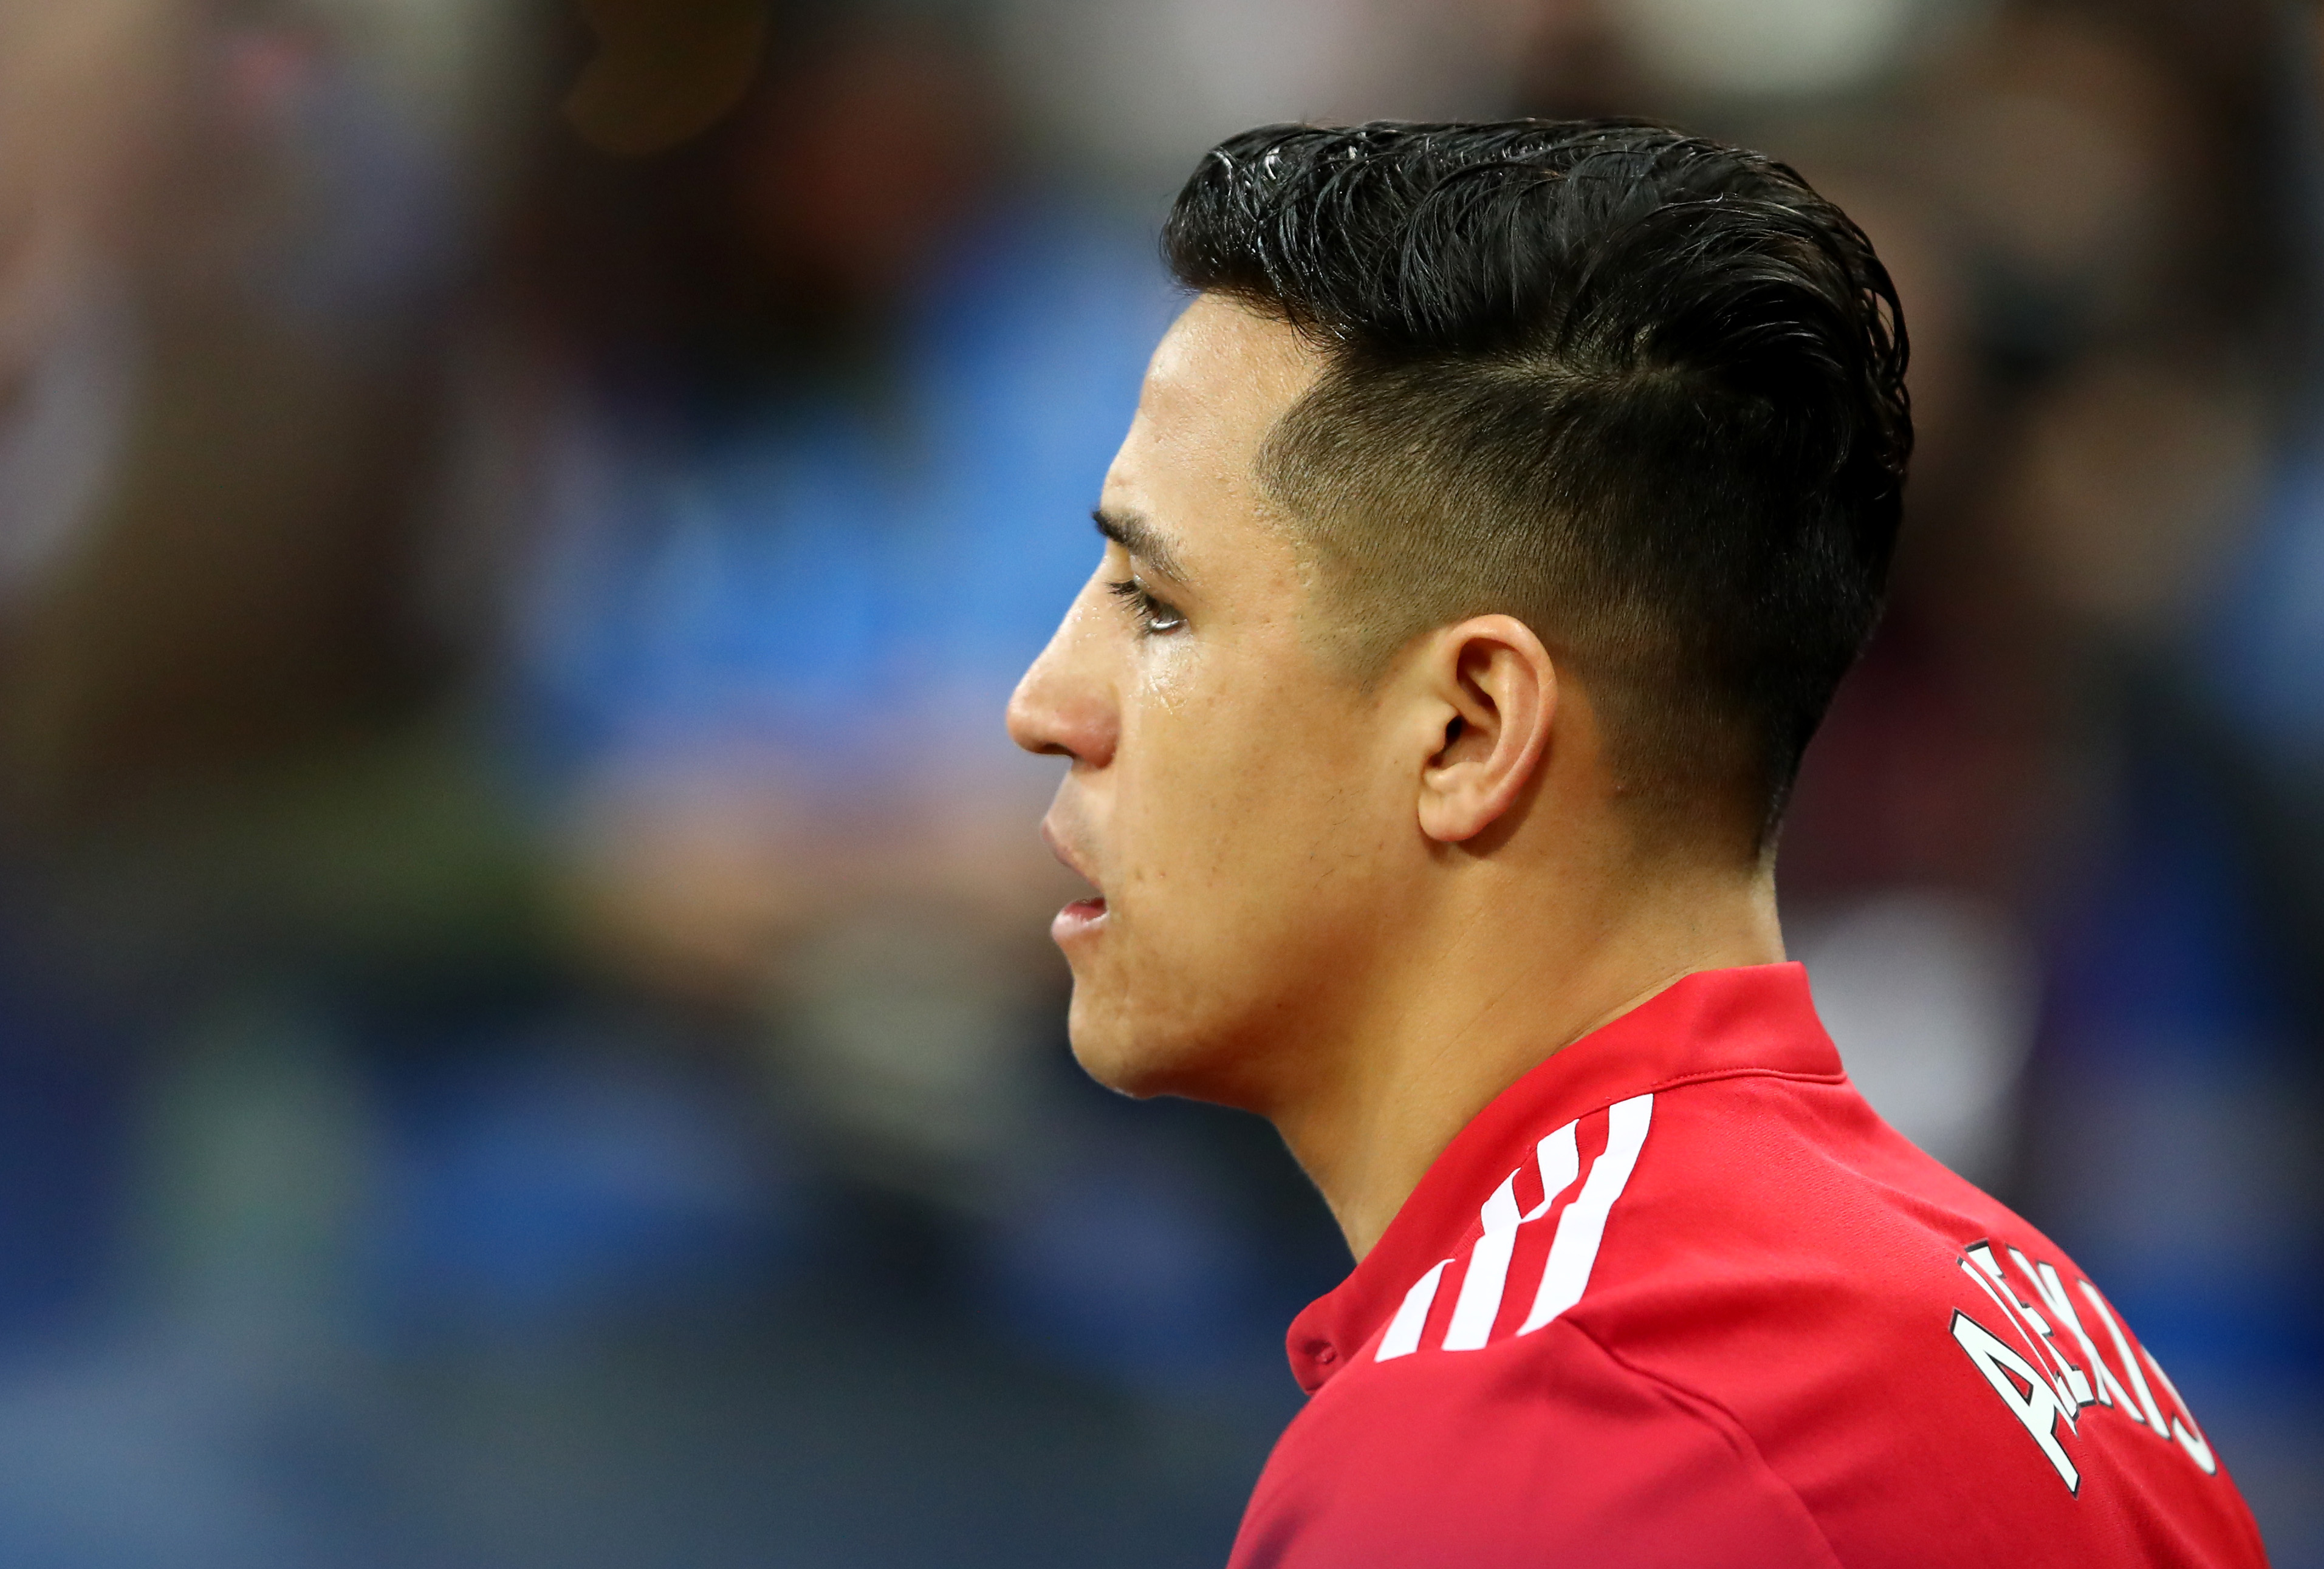 Why Alexis Sanchez & Pogba were dropped for Man United vs